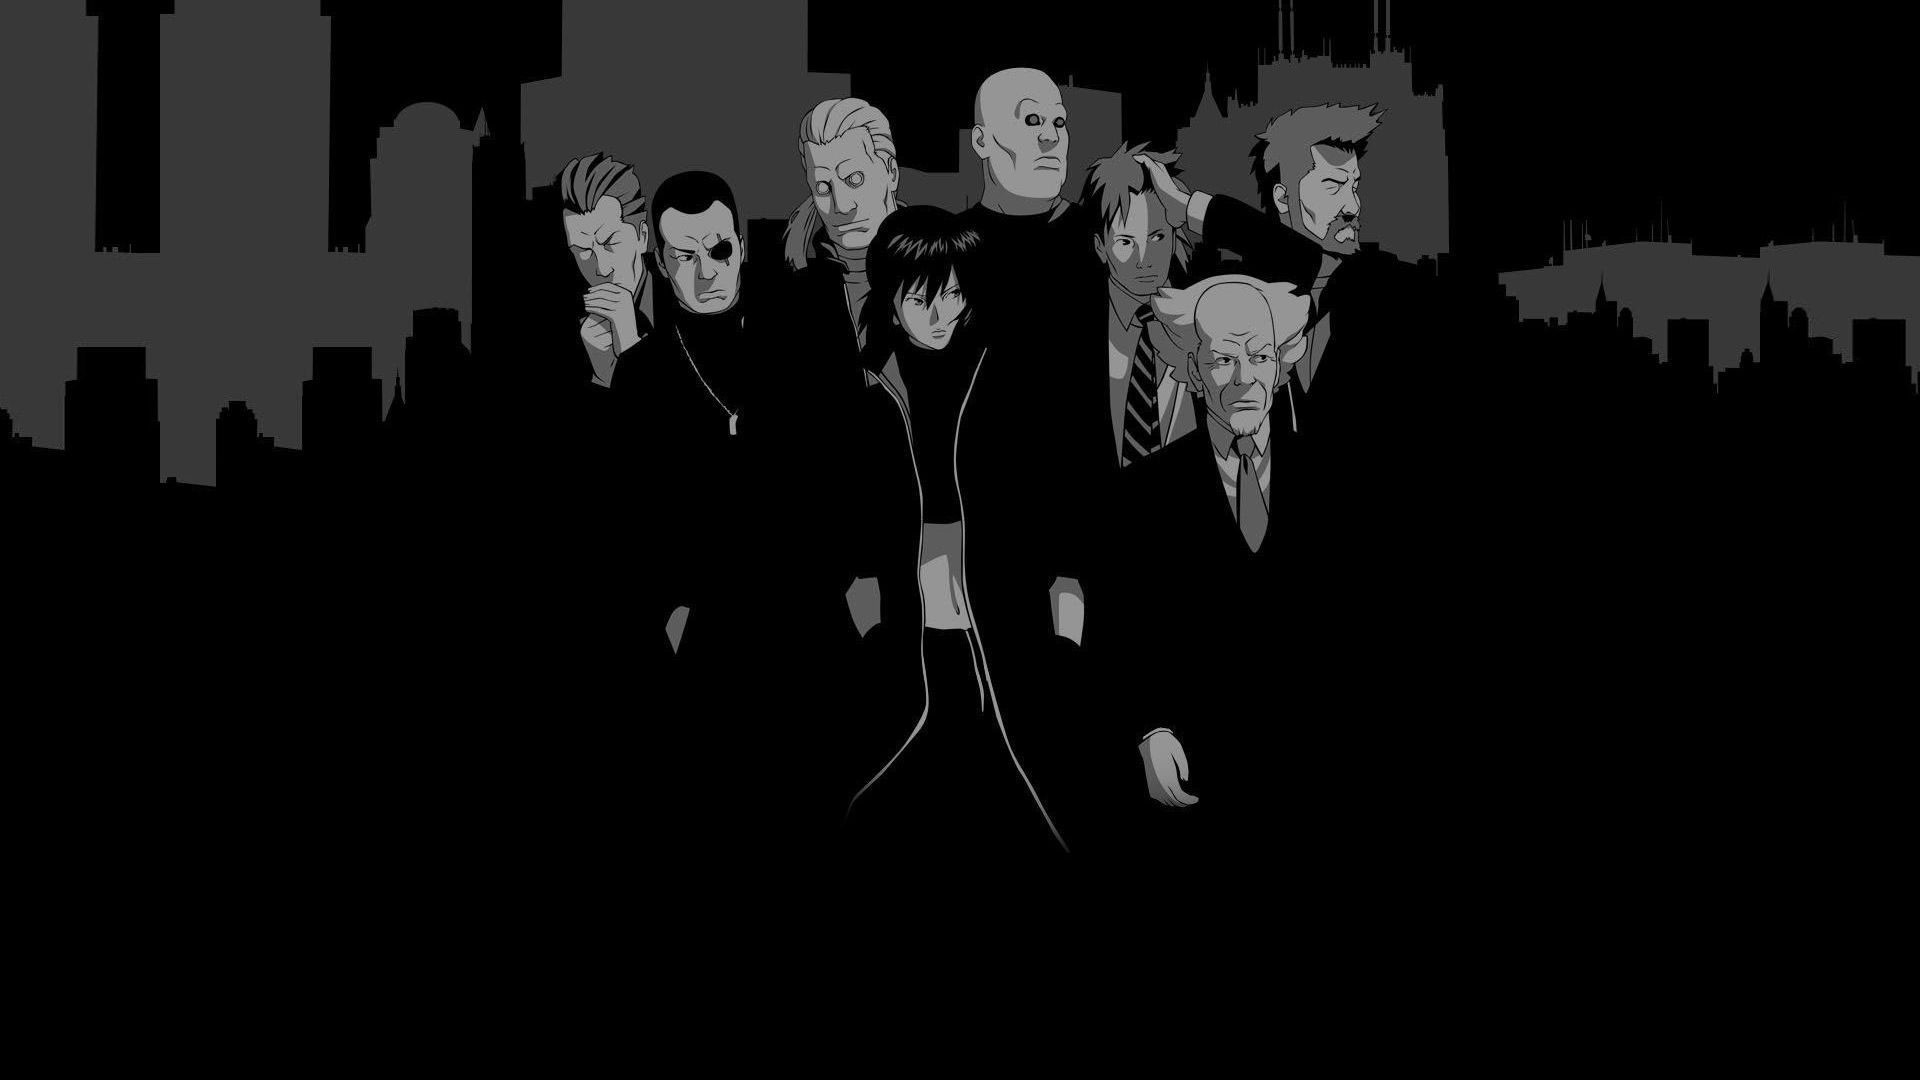 Wallpaper Ghost In The Shell 1920x1080 Puscifer 1147518 Hd